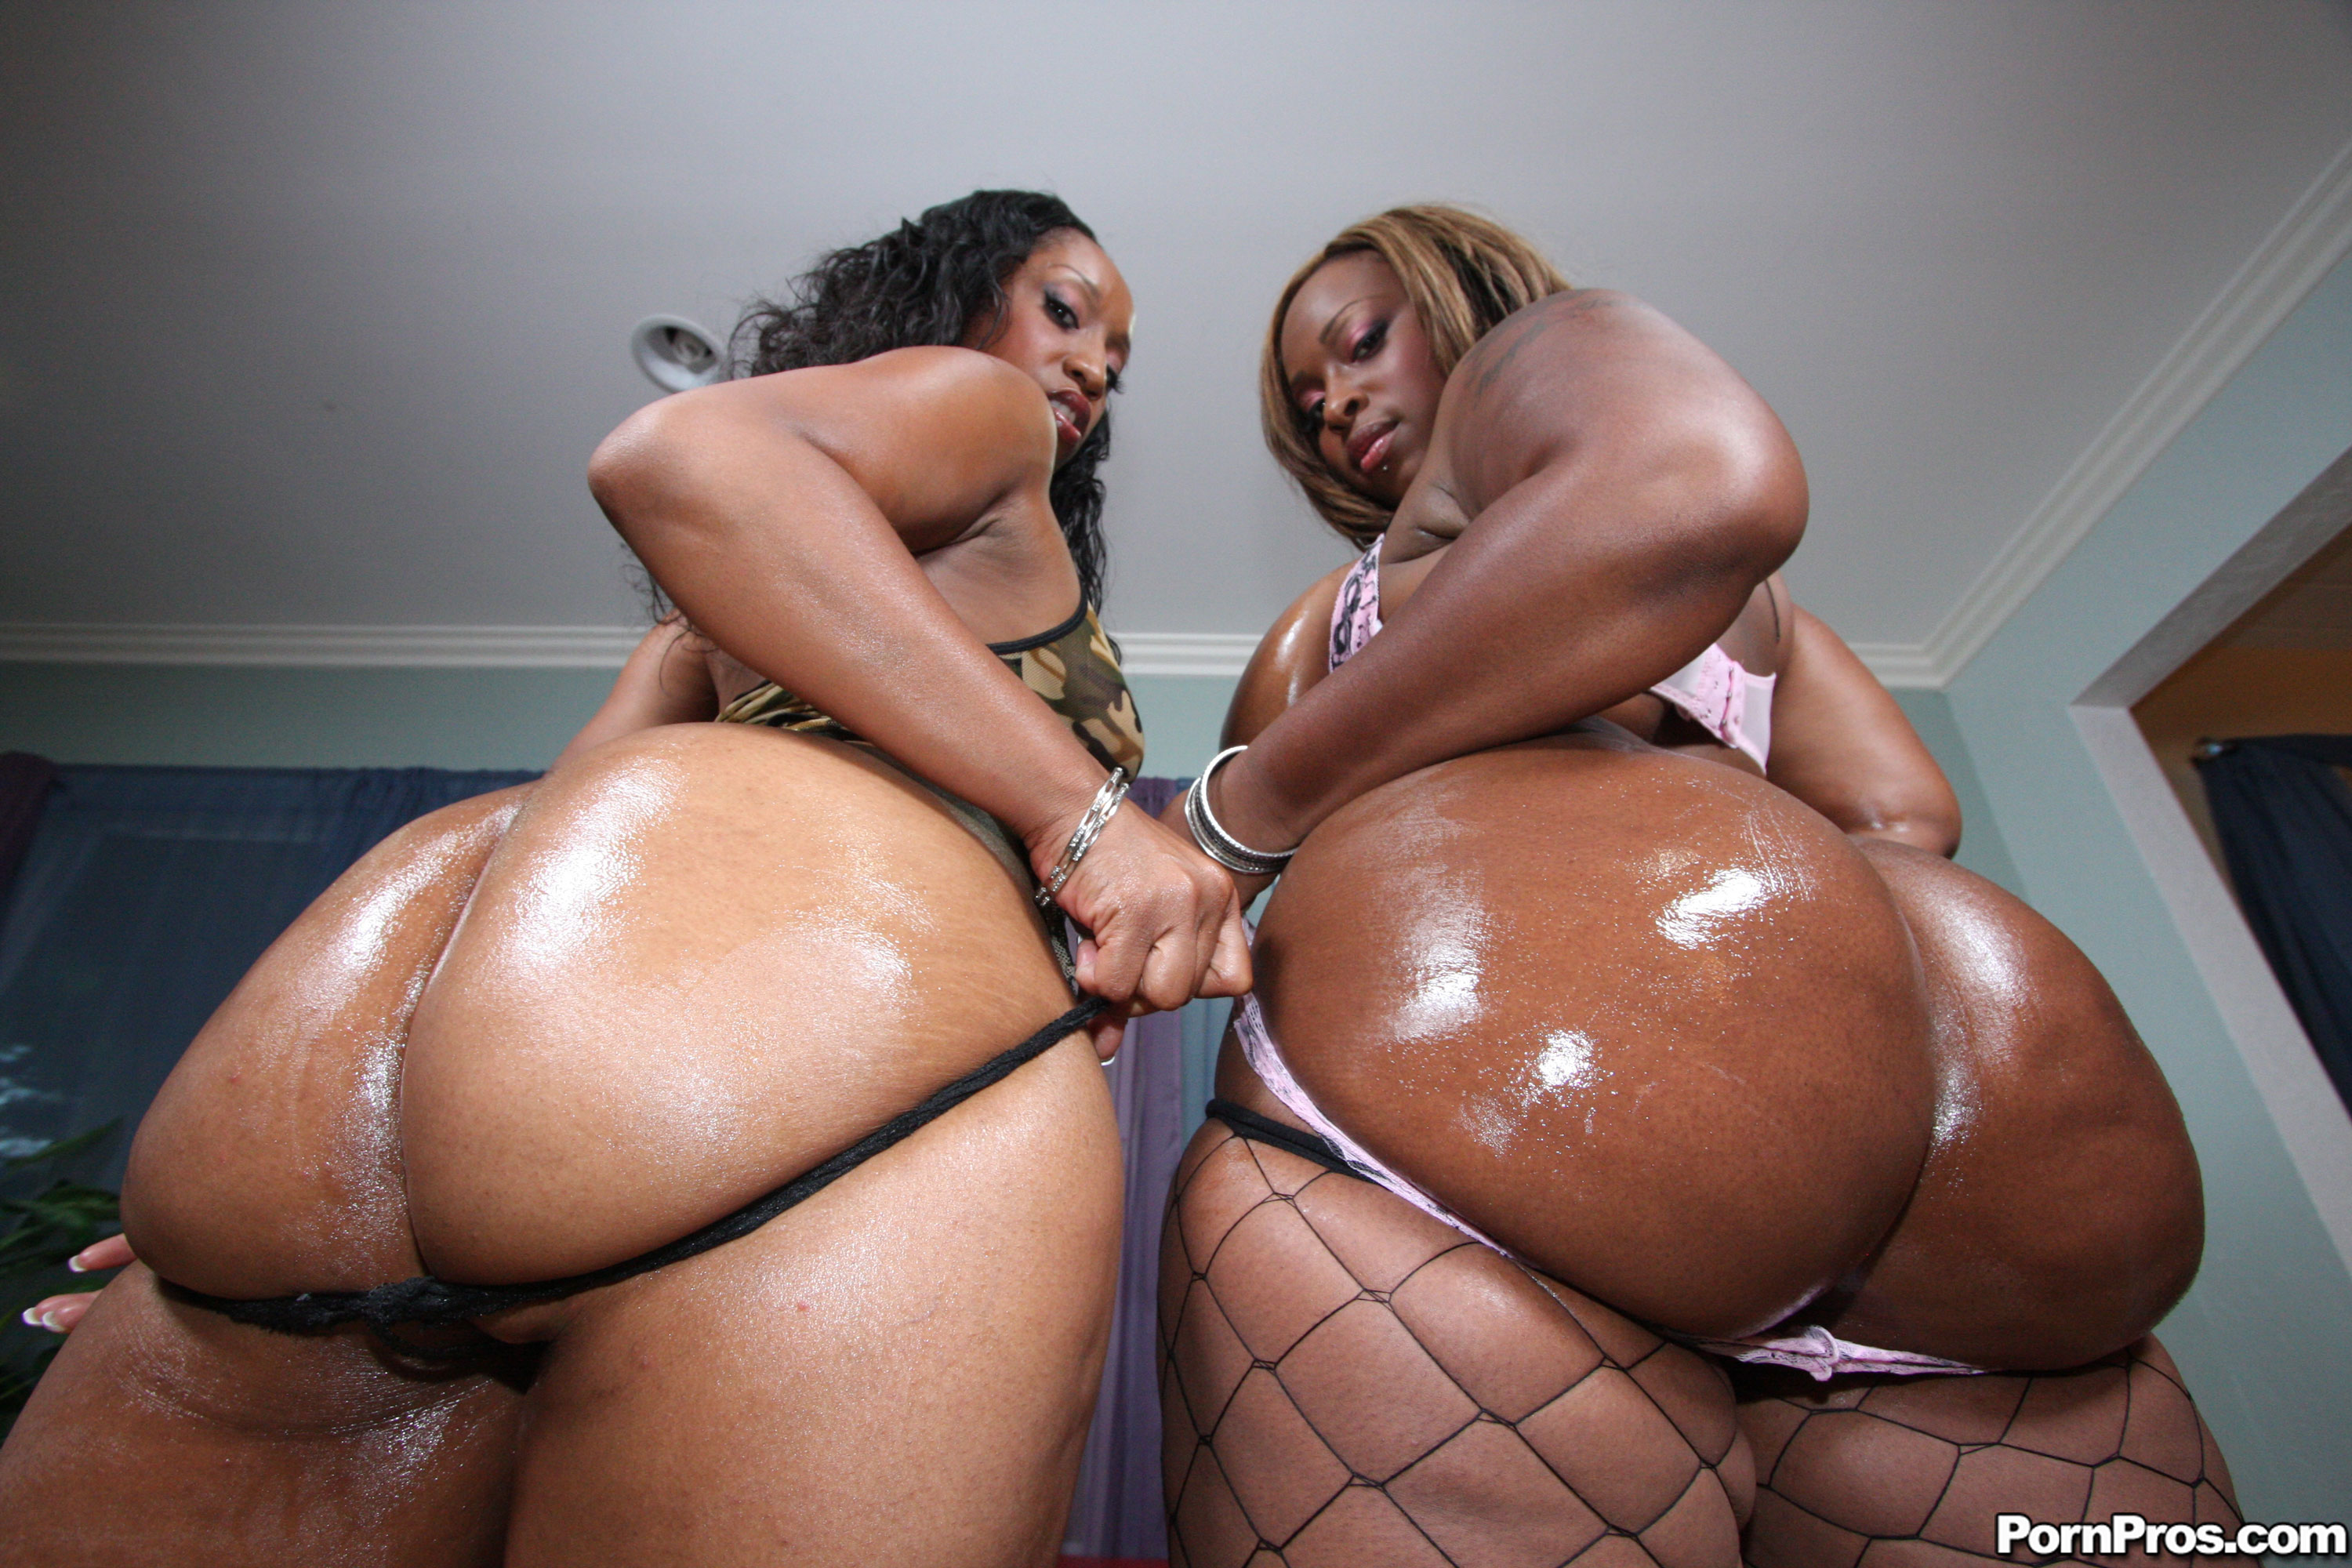 Not Big black oiled ebony ass and pussy consider, that